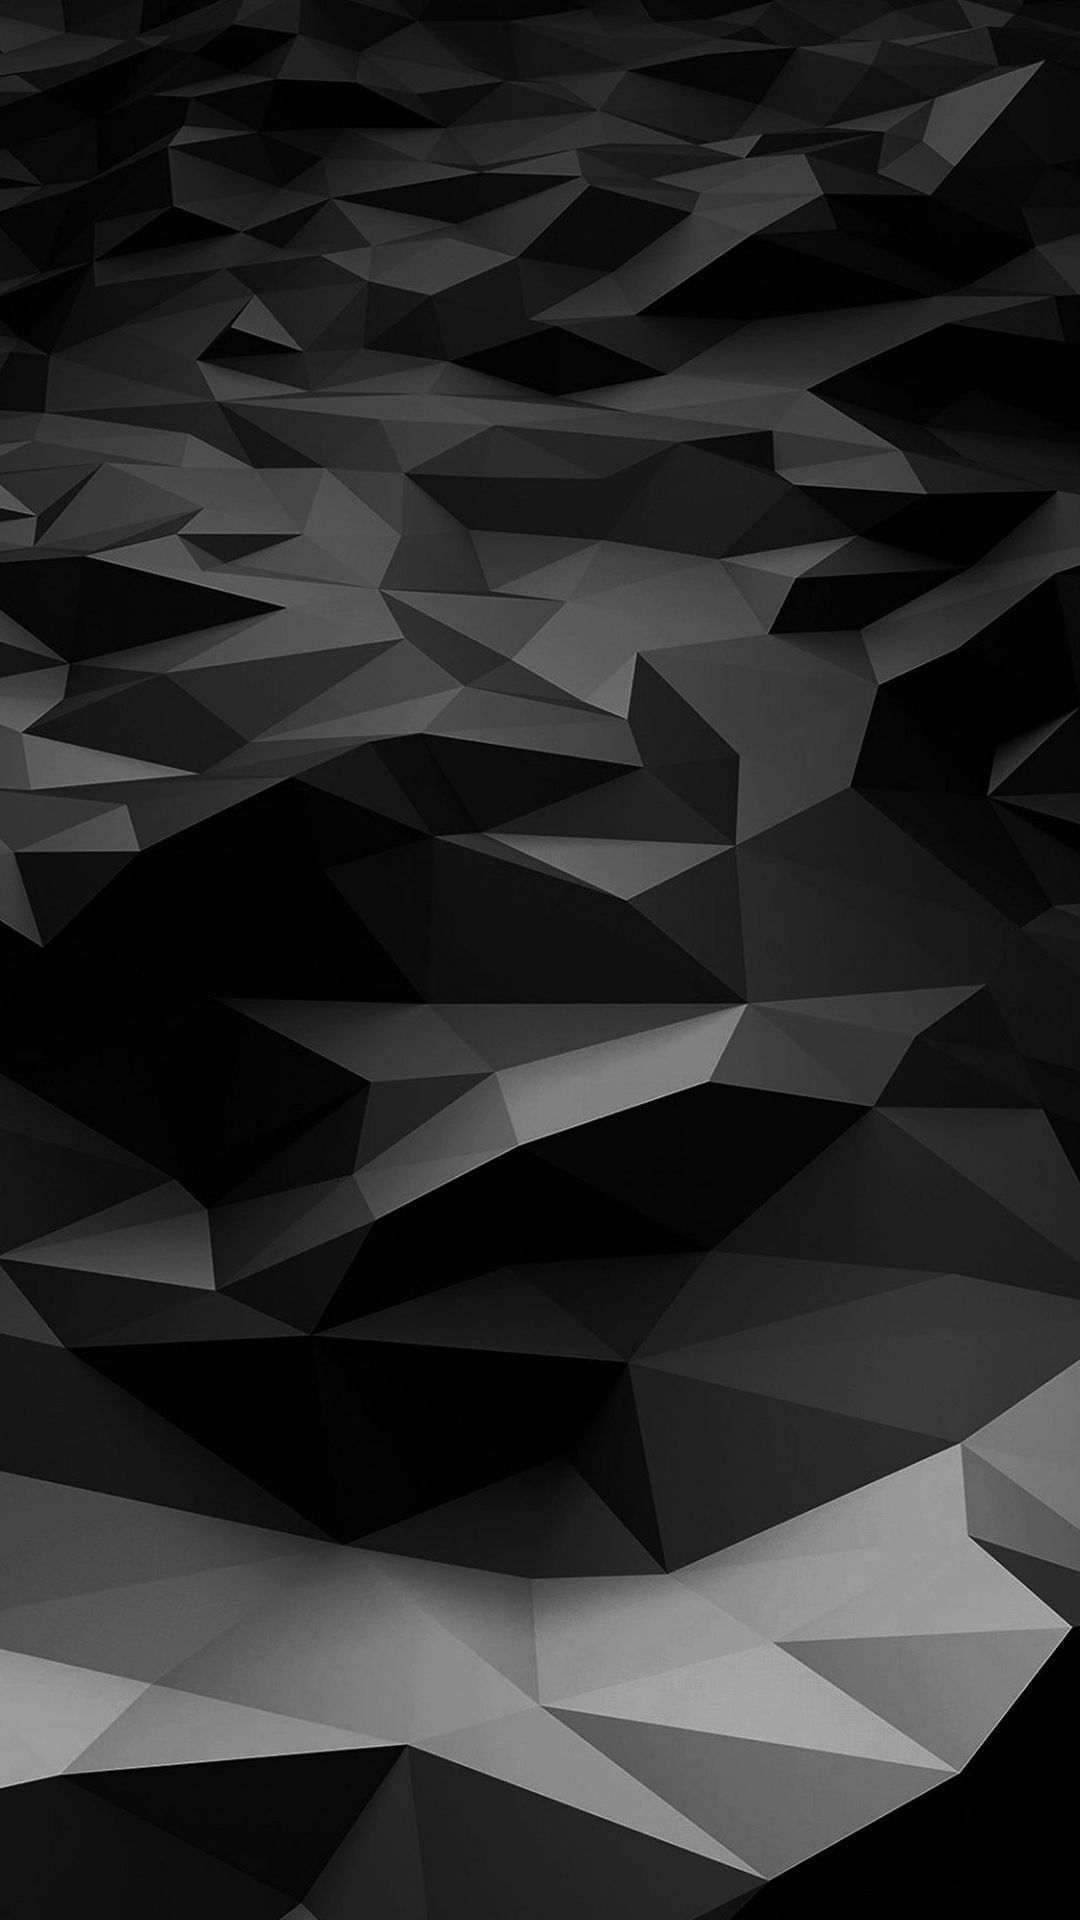 Abstract Black And Gray Wallpaper Ios Iphone Wallpaper Wallpaper Iphone Roses Gold Wallpaper Iphone